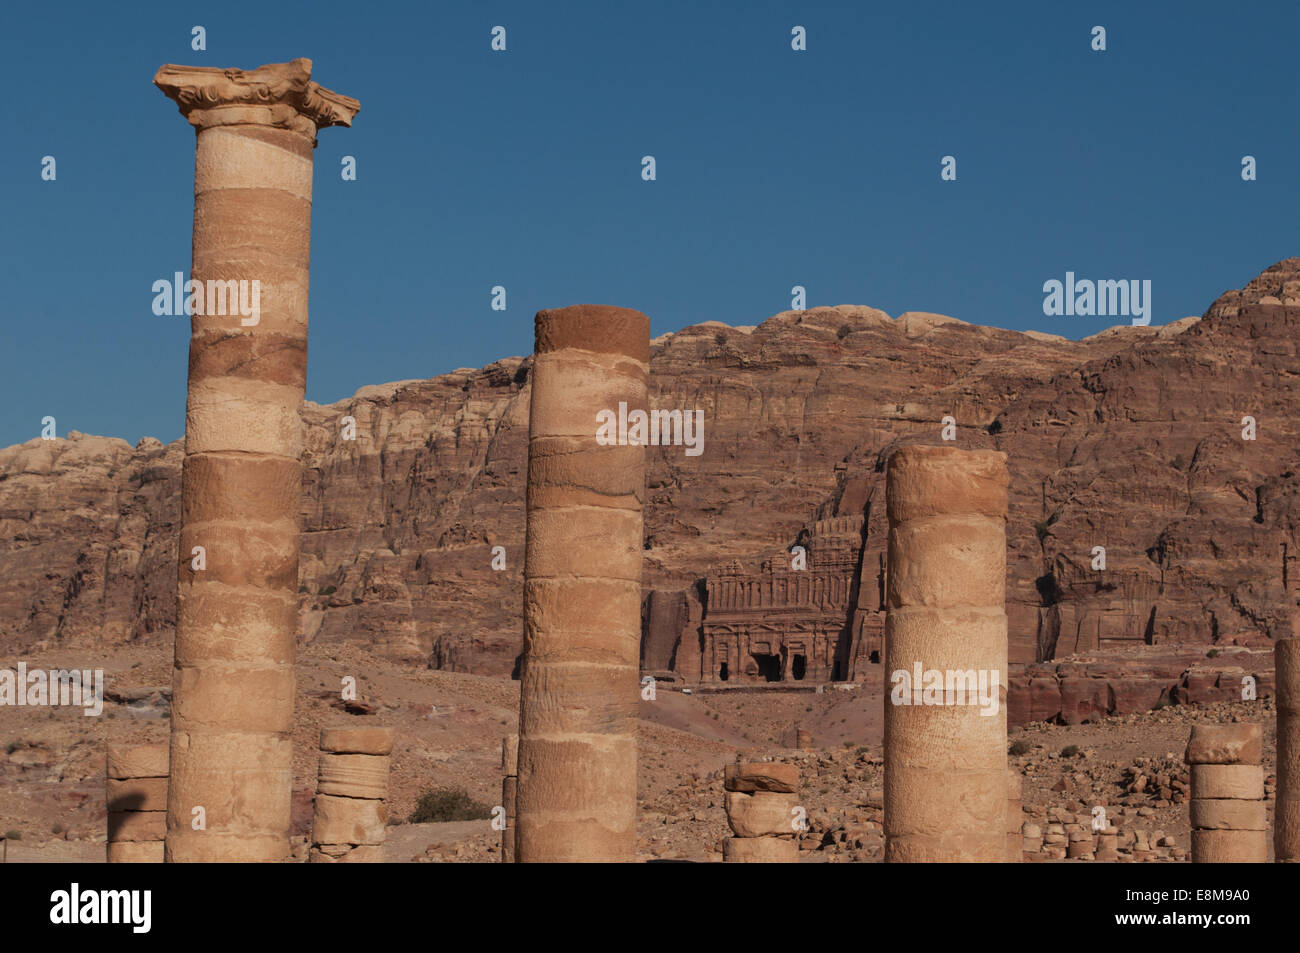 Petra: Kings Wall with the Royal Tombs, funerary structures carved int the rock face of the mountain seen through Stock Photo